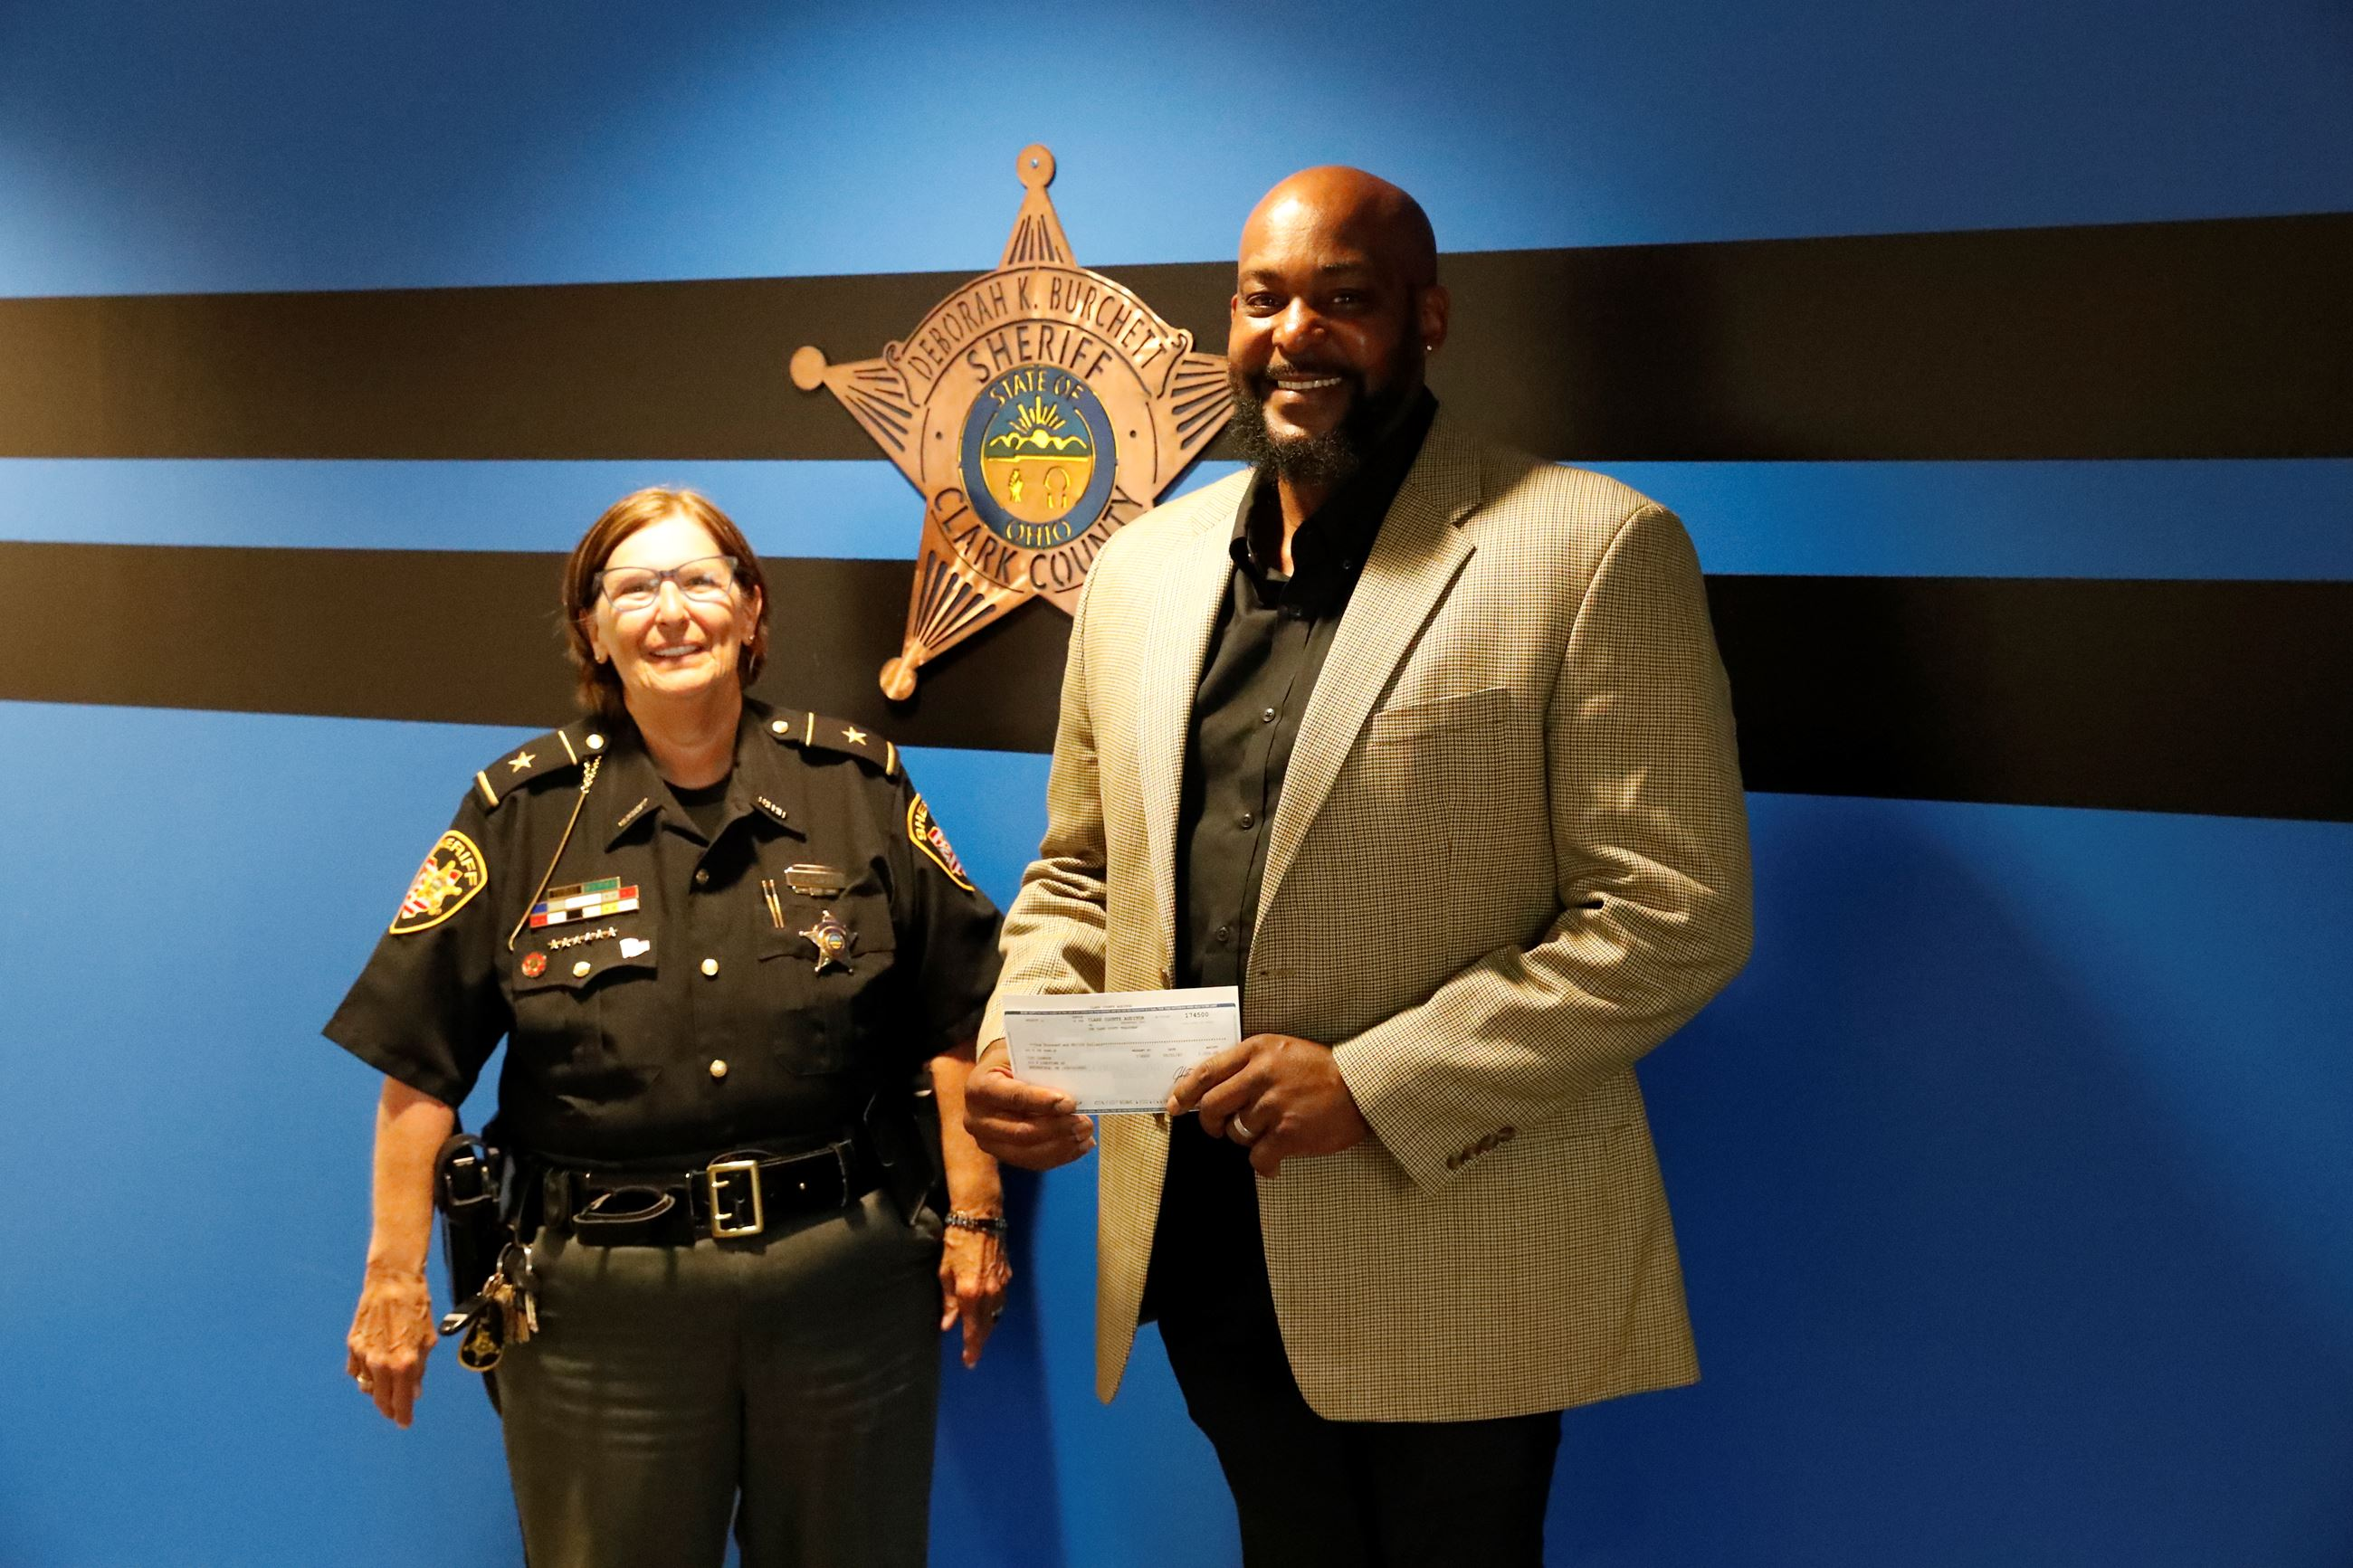 Sheriff Deb Burchett presents a check to Stephen Massey of CitiLookout.